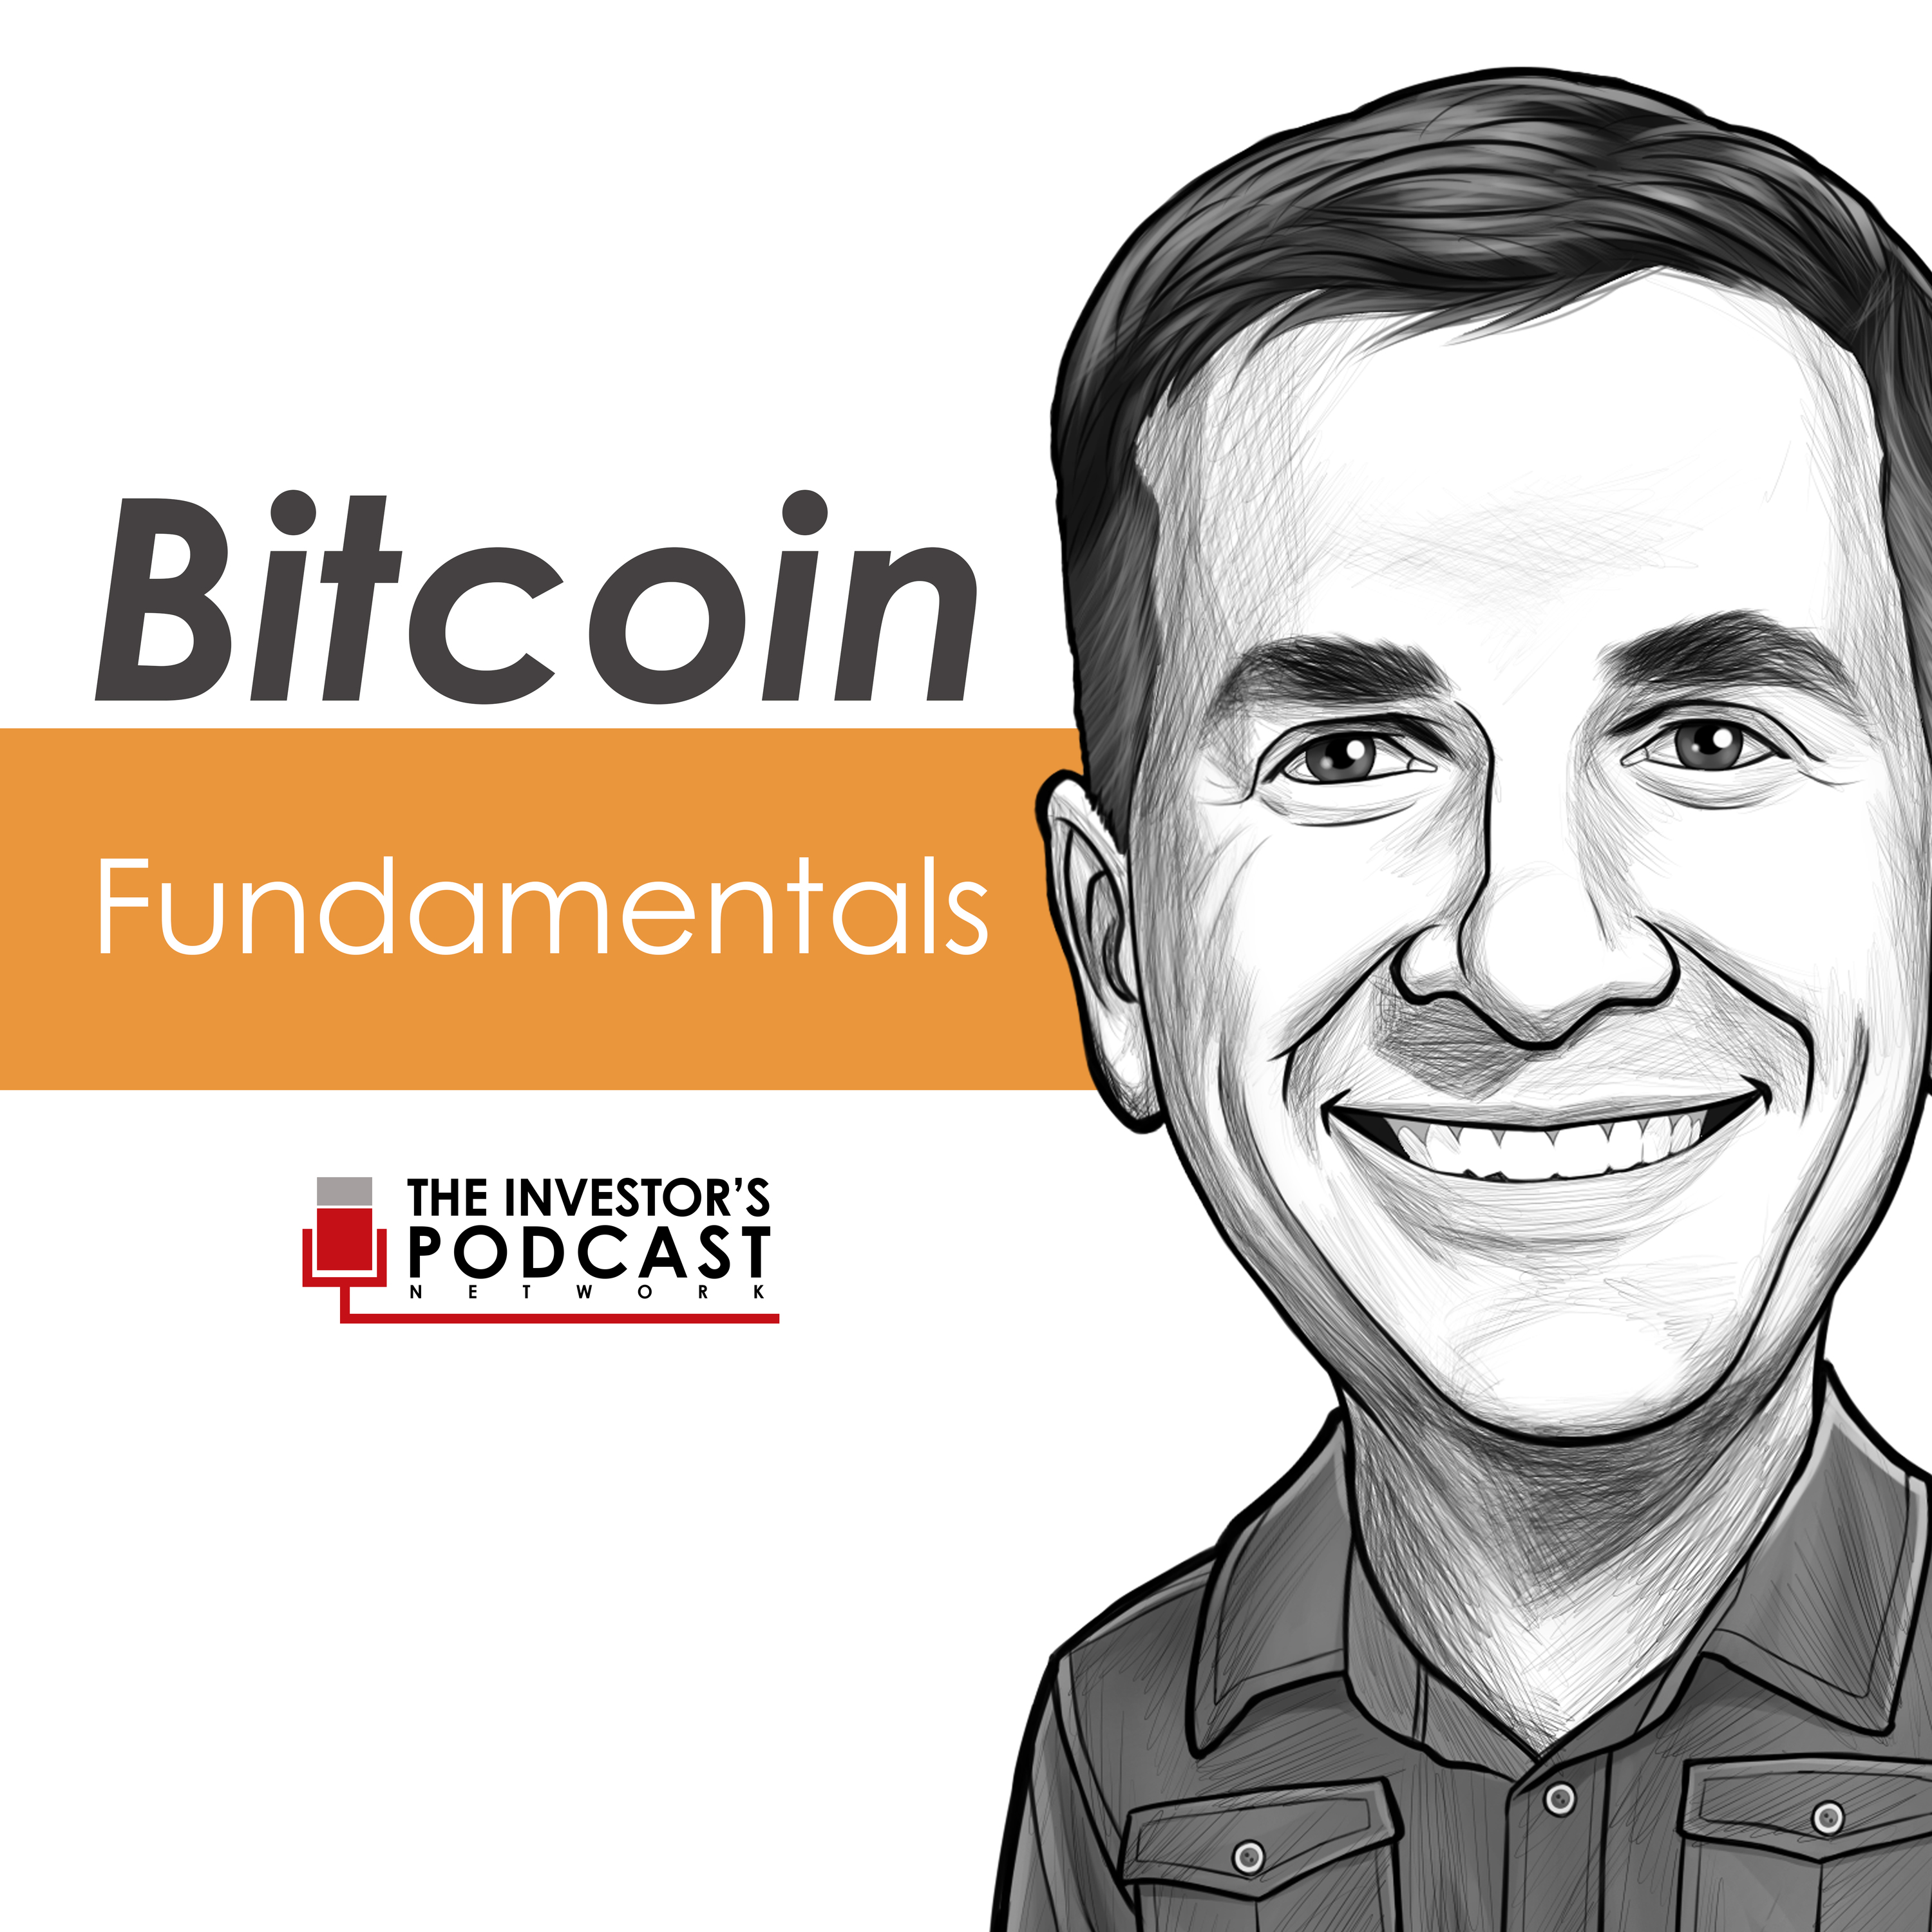 BTC007: Bitcoin Disrupting Payment Clearing Houses w/ Jack Mallers (Bitcoin Podcast)